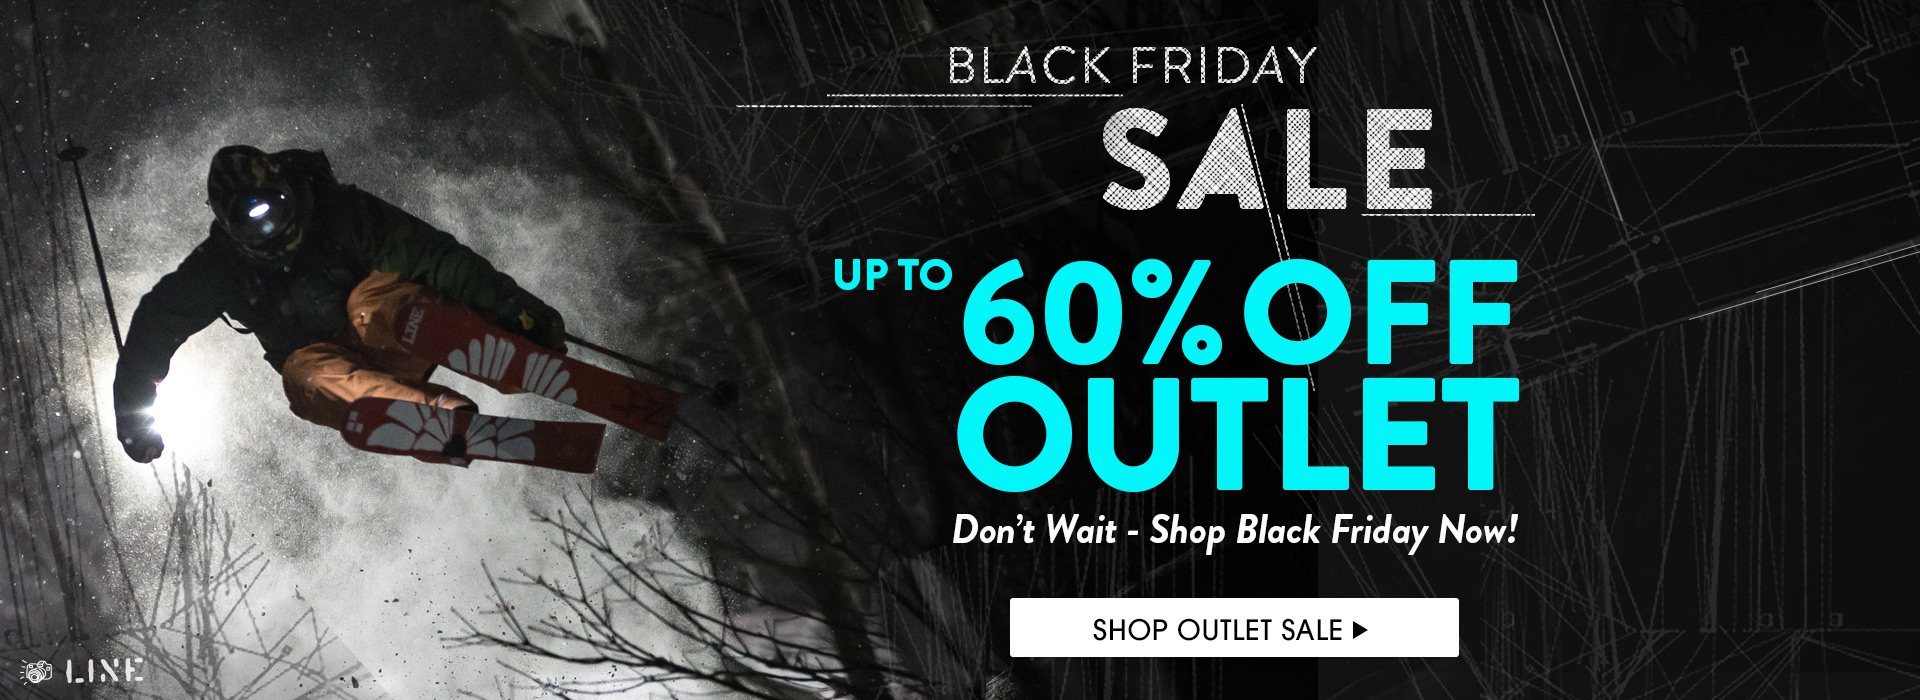 Black Friday. Up to 60% Off. Shop Now!